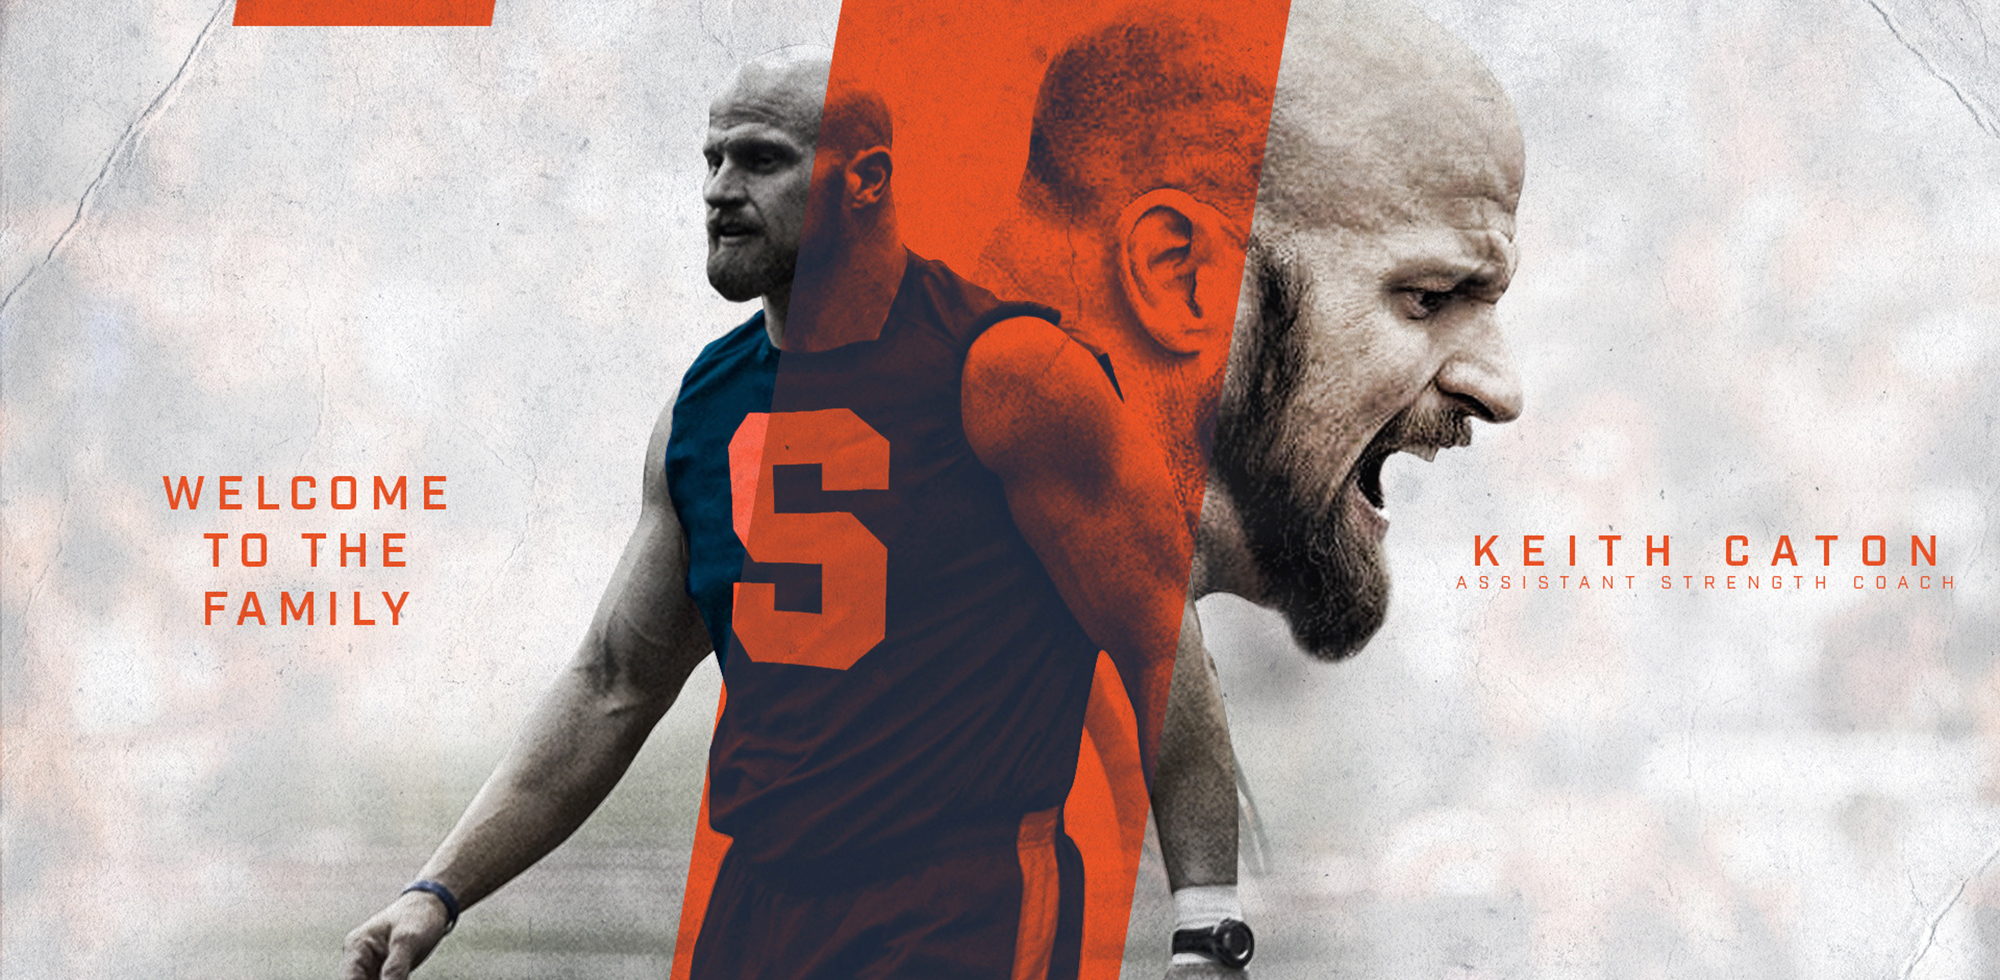 Caton Named Assistant Strength Coach For Football Syracuse University